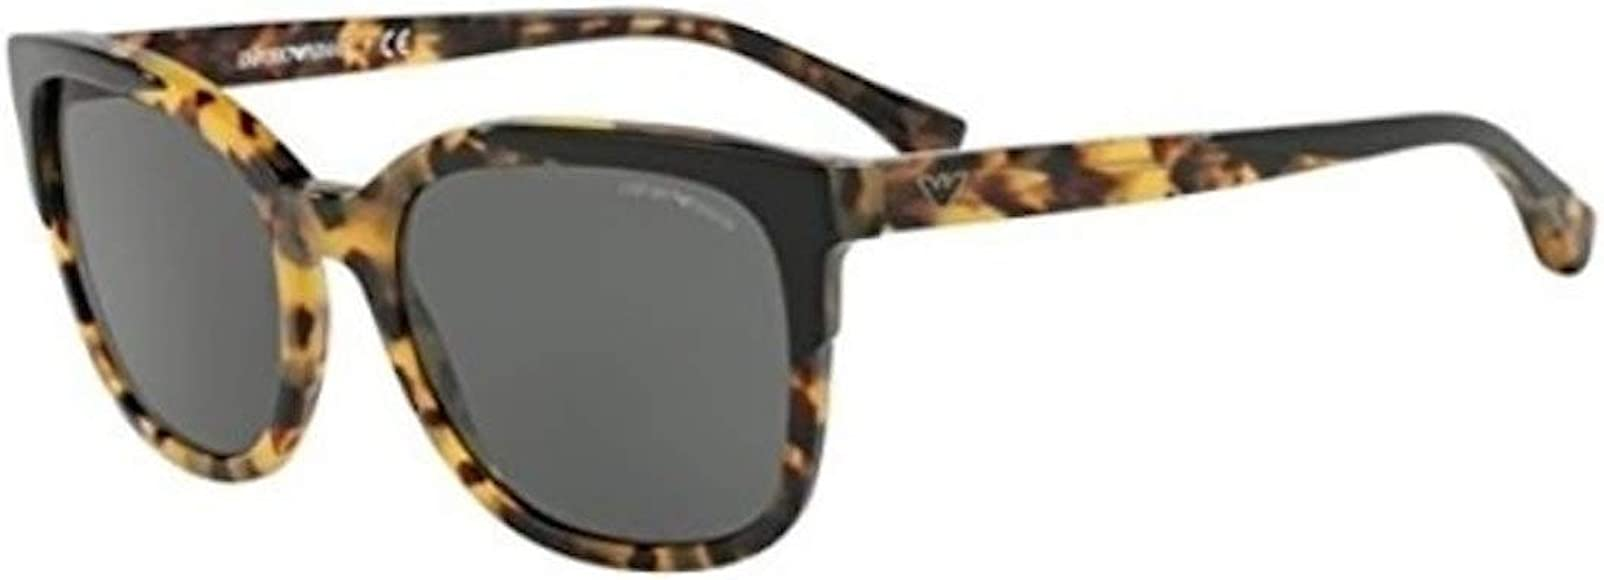 Emporio Armani 0EA4119 Gafas de sol, Top Black On Havana, 54 ...